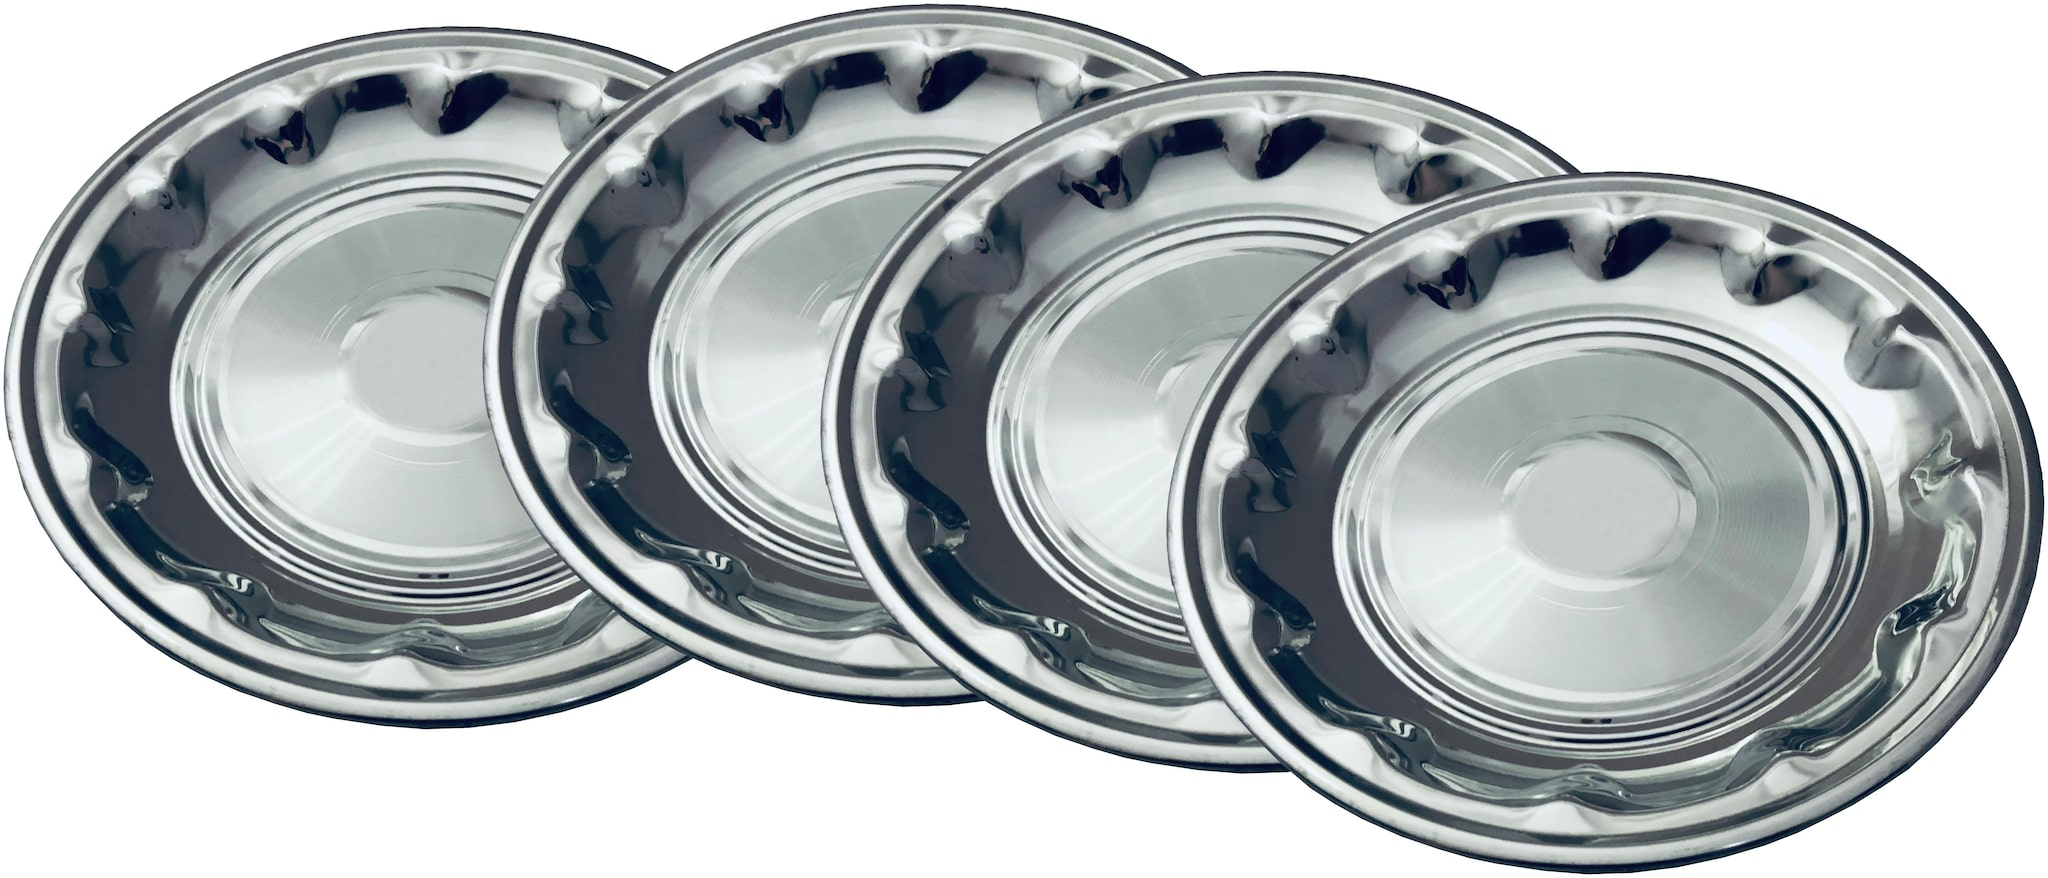 Beezy Stainless Steel Deep Design Plates;